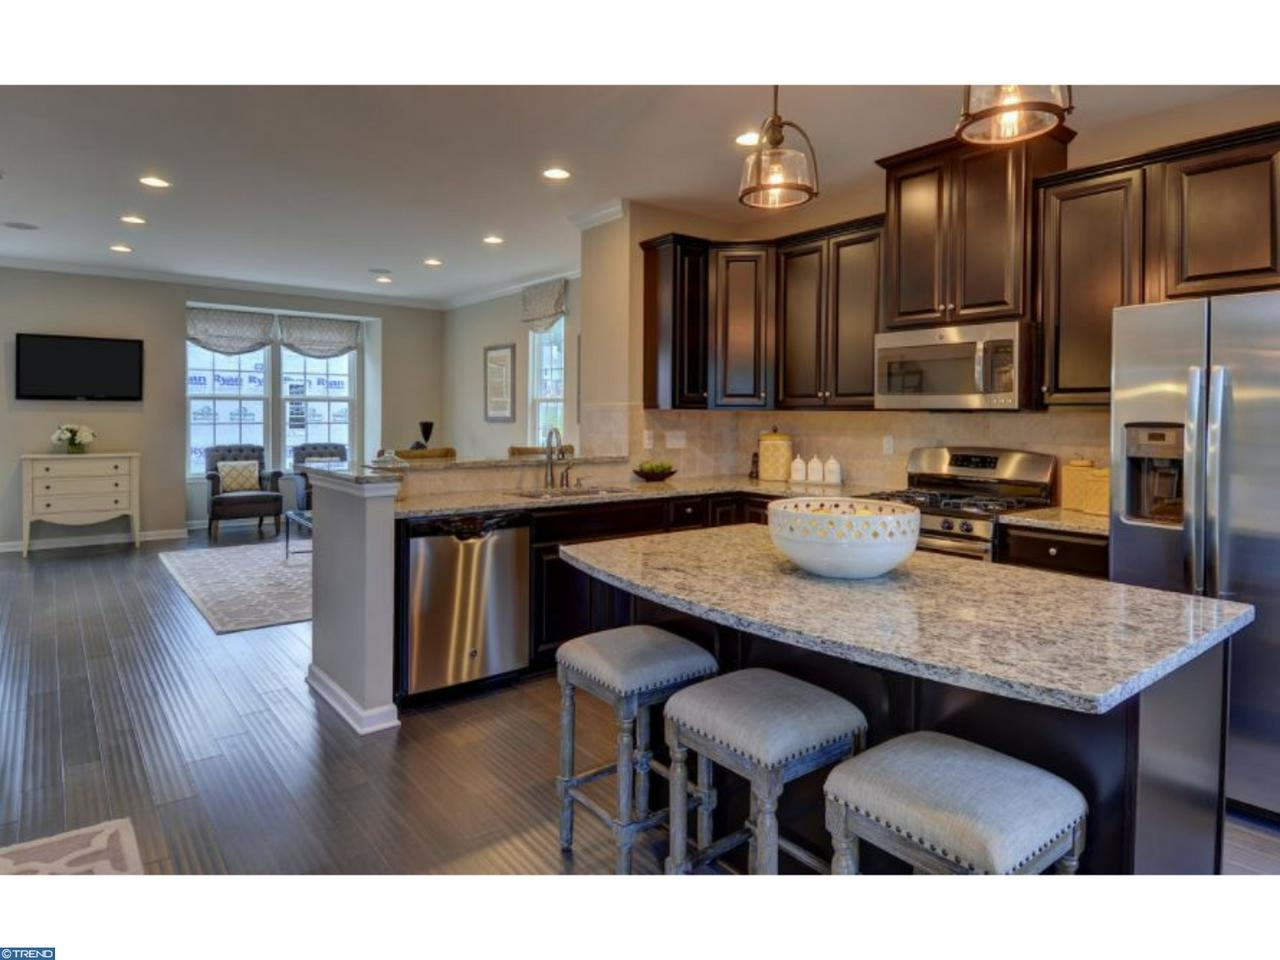 Image of kitchen in a townhouse in Parkway South Ridge, Middletown, DE